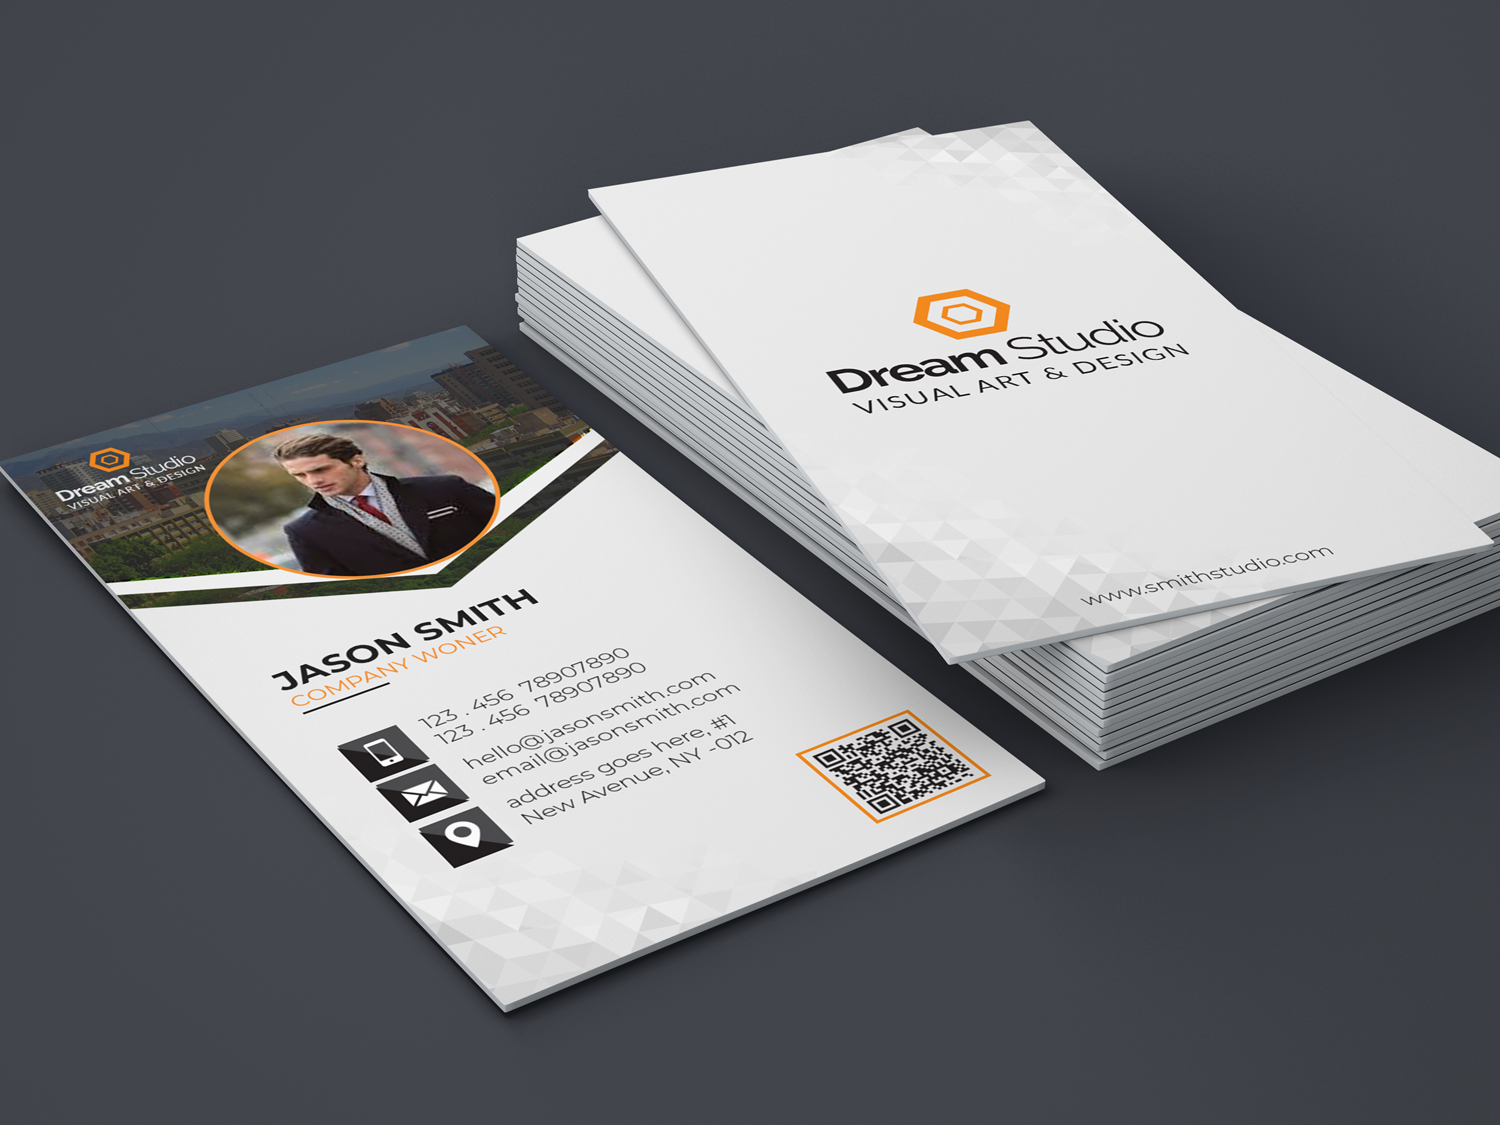 Business Card Design colorfull smart sale publish print template personal media magnetic elegan creative corporate colorful clear clean business card business bundle branding busines card adobe photoshop